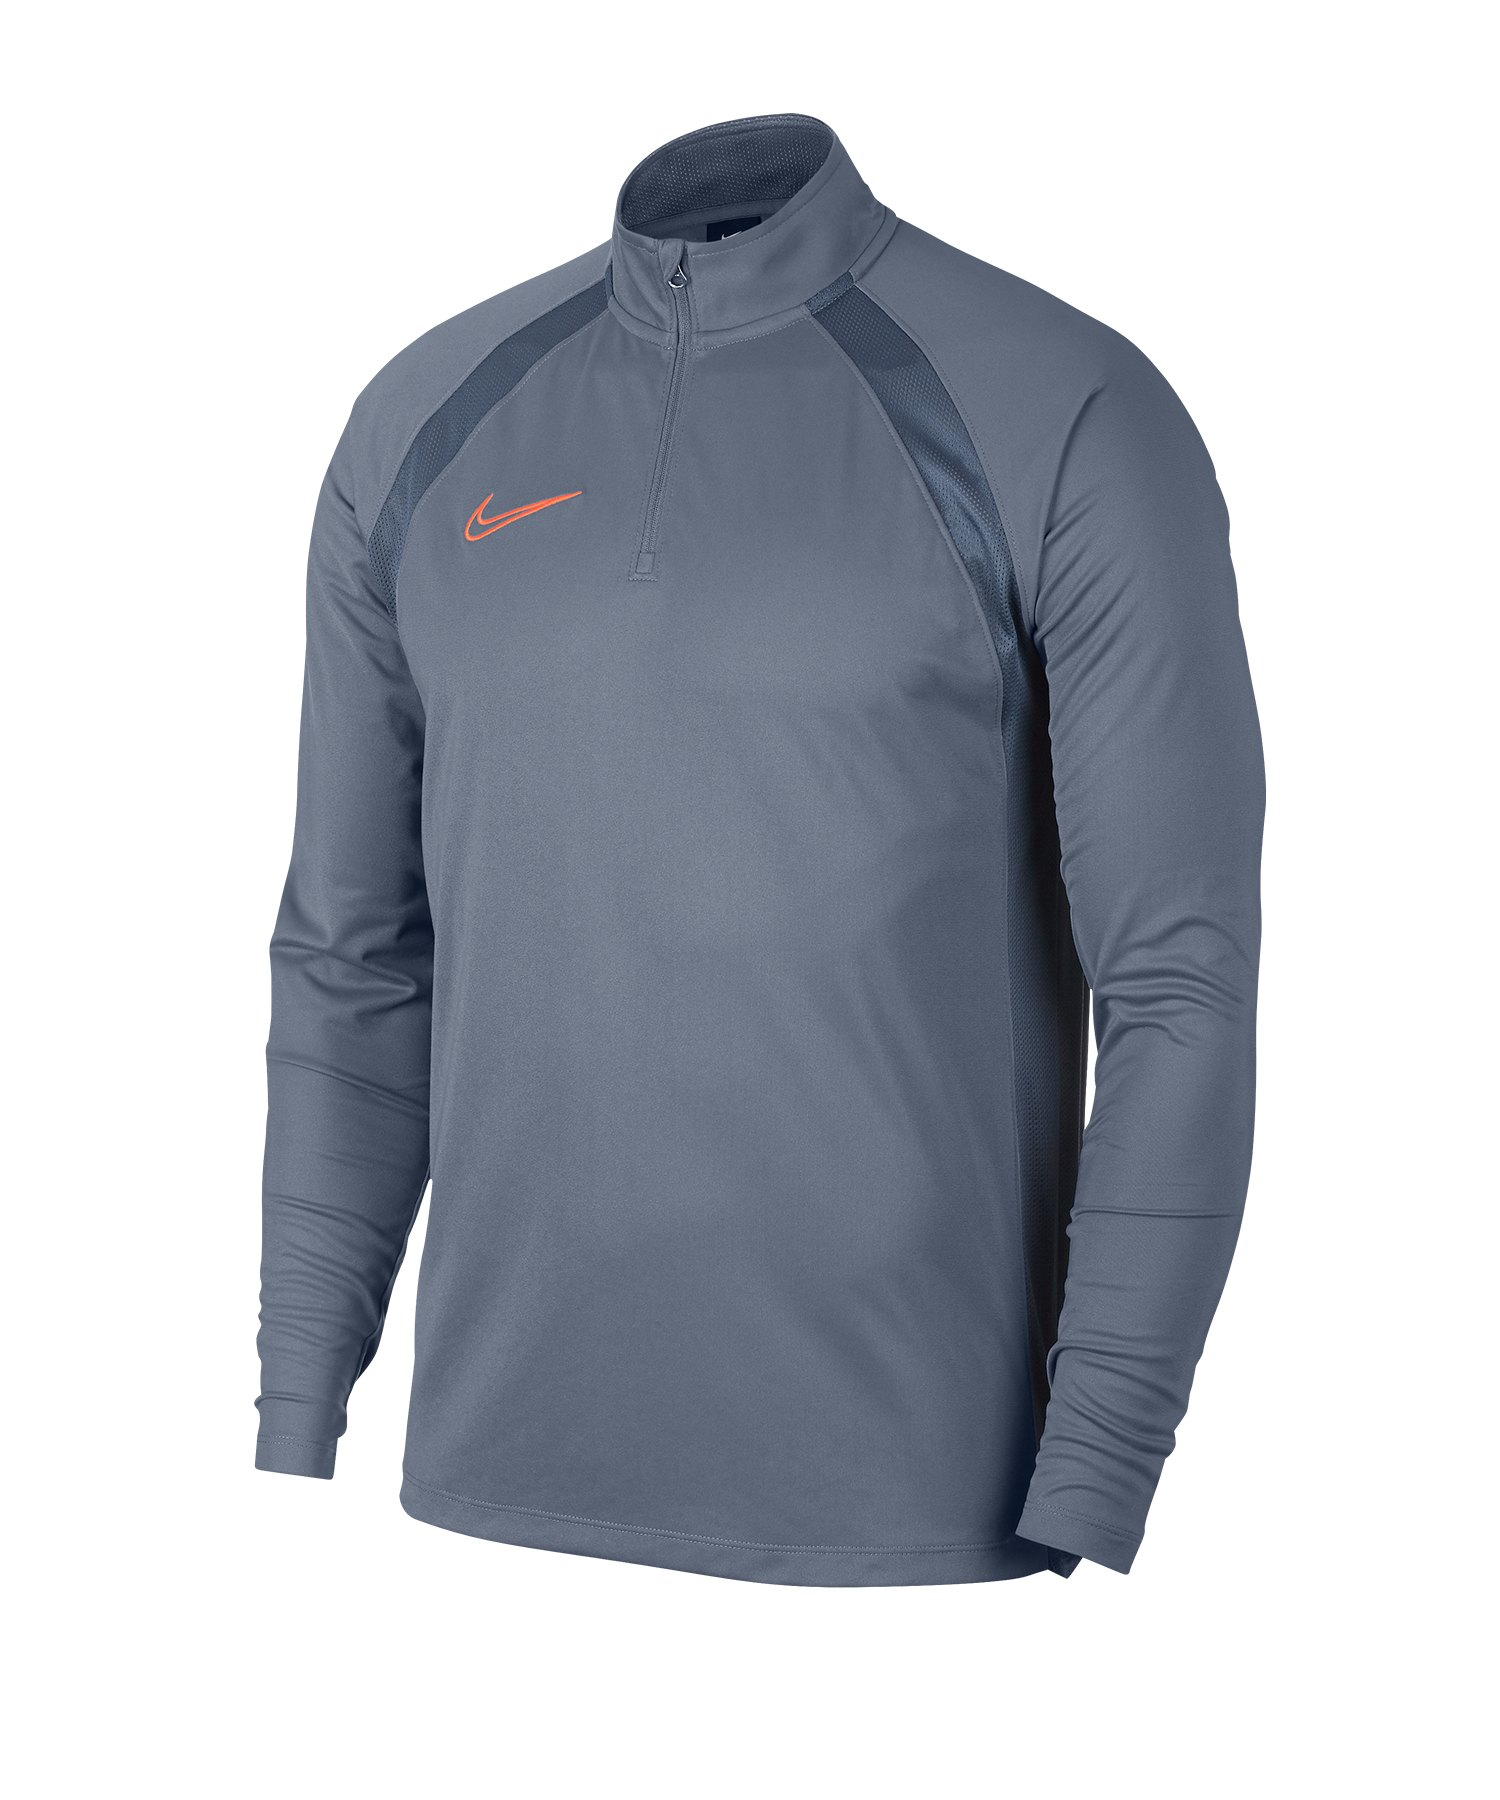 Nike Dri-FIT Academy Drill Top Grau F490 - Blau